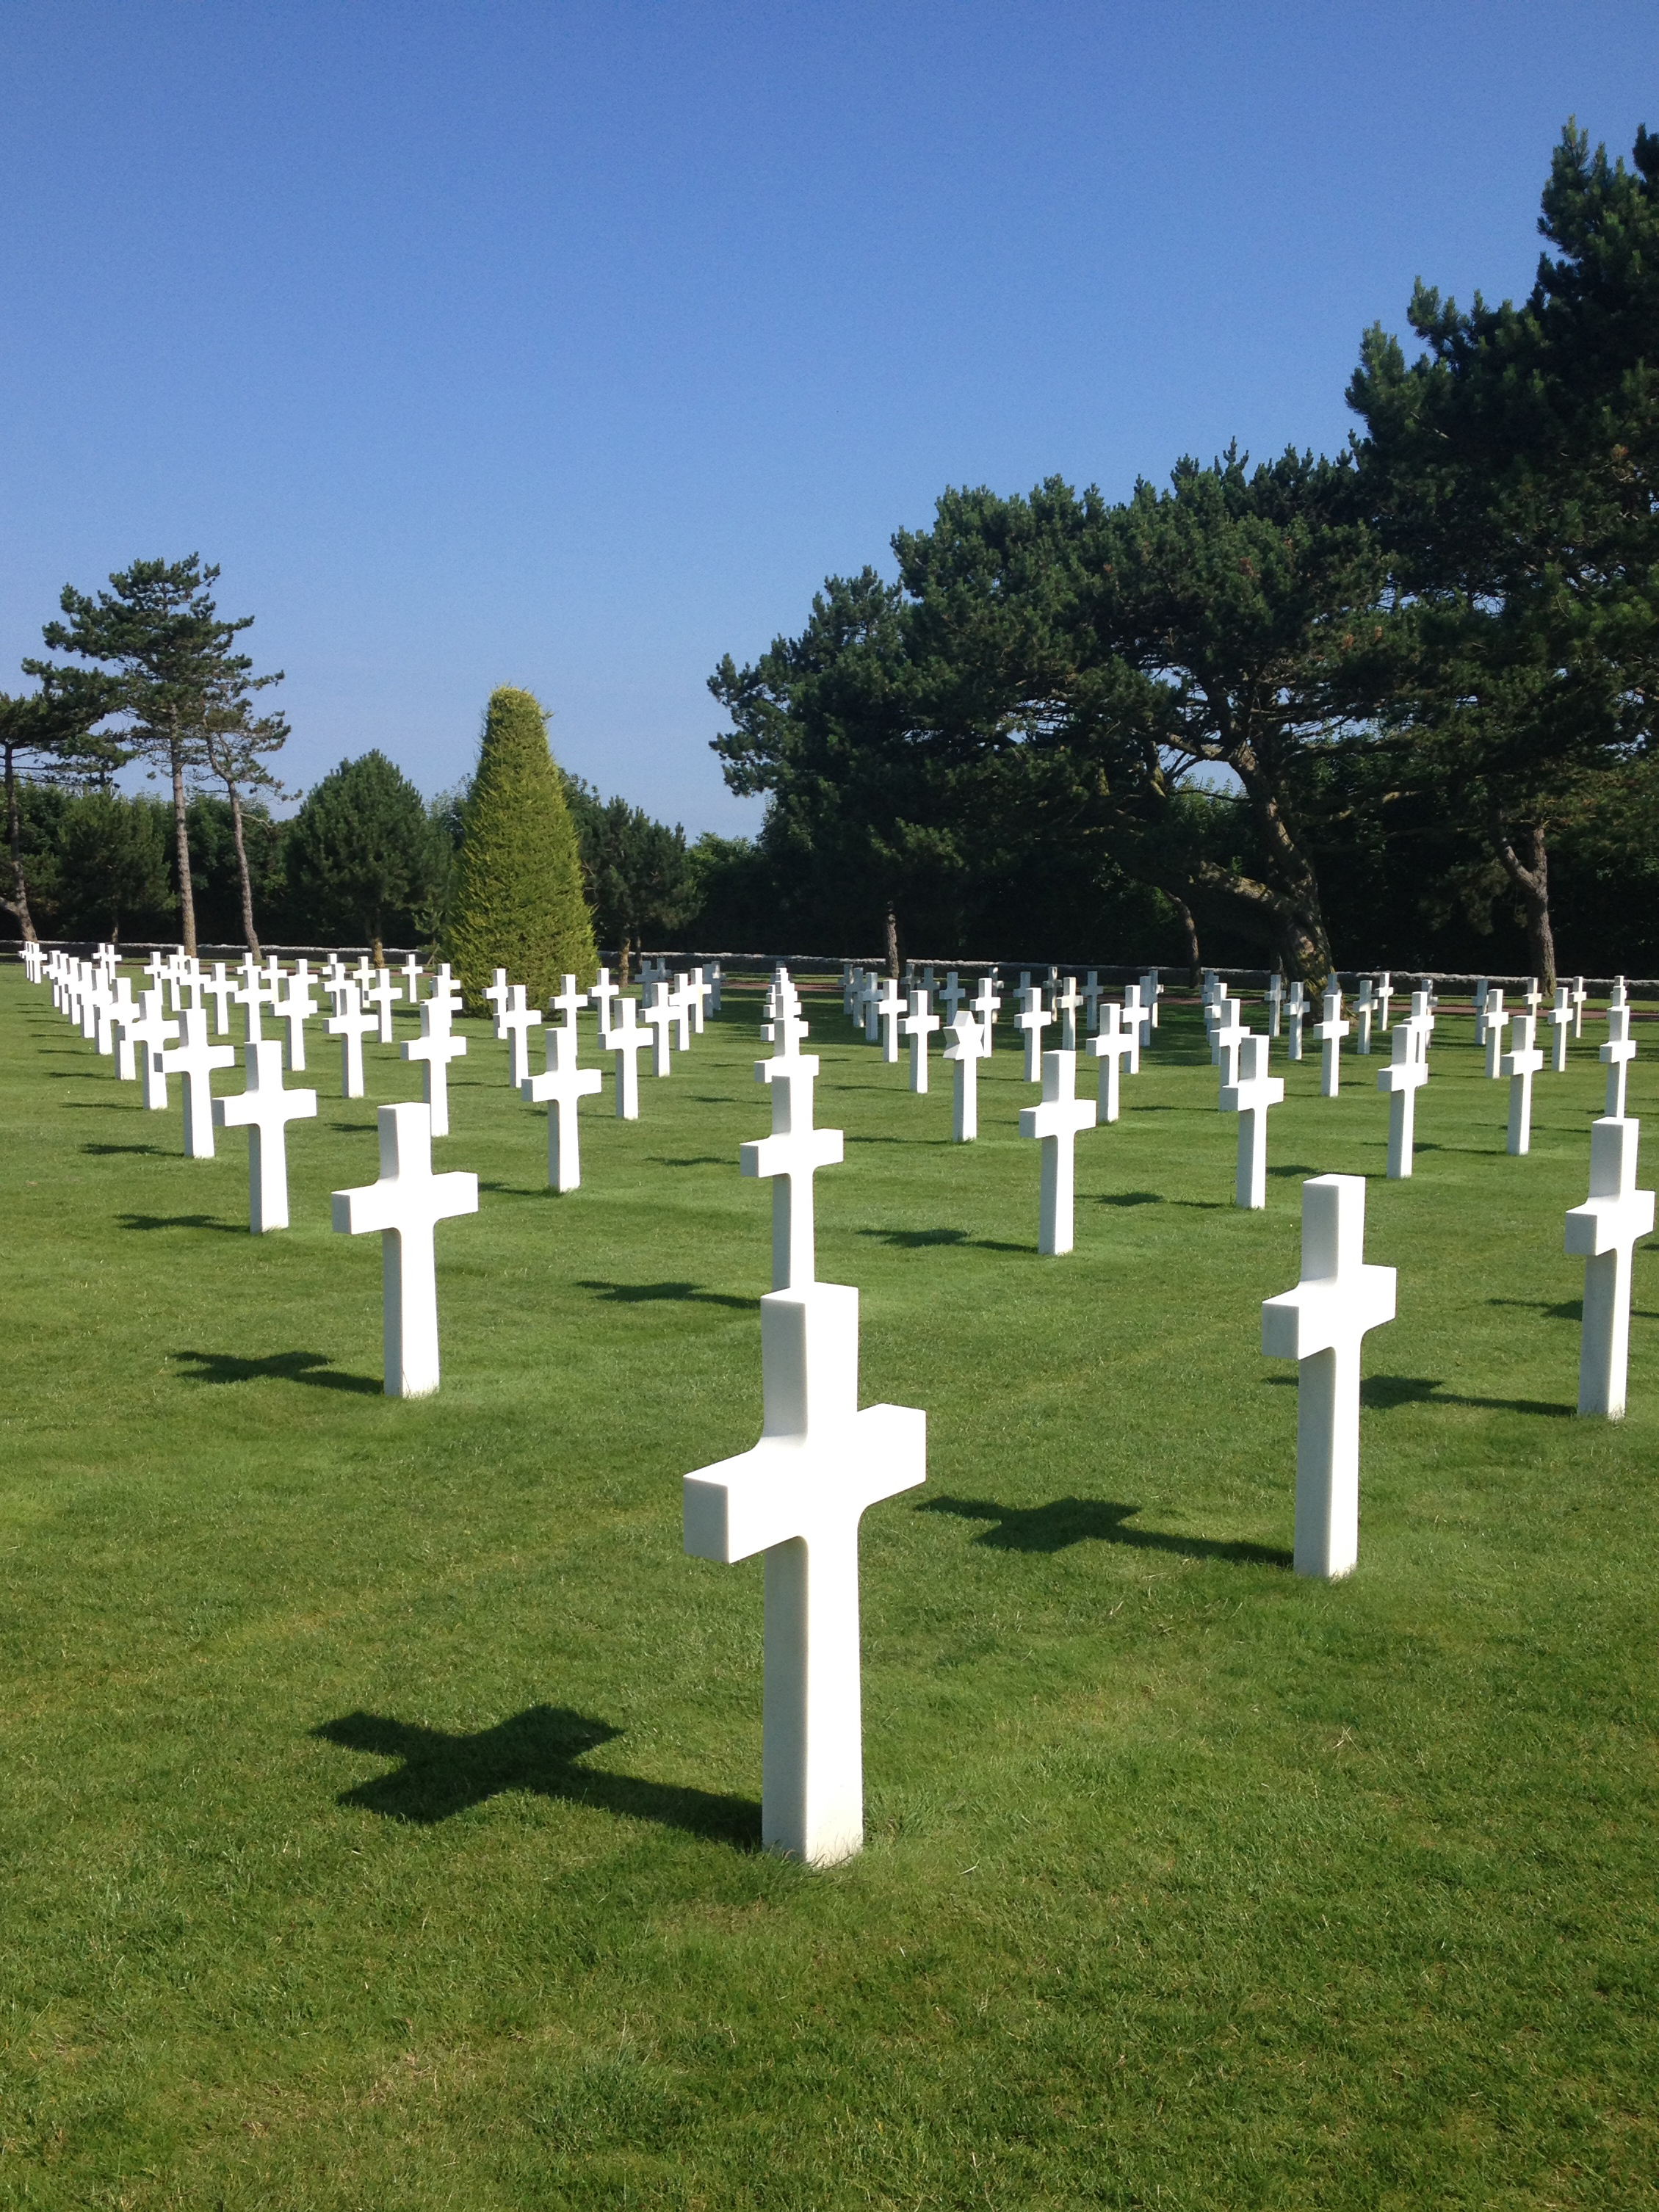 I traveled to France with my choir and we were given the honor of singing at Normandy on the Fourth of July for the 70th anniversary of D-Day.